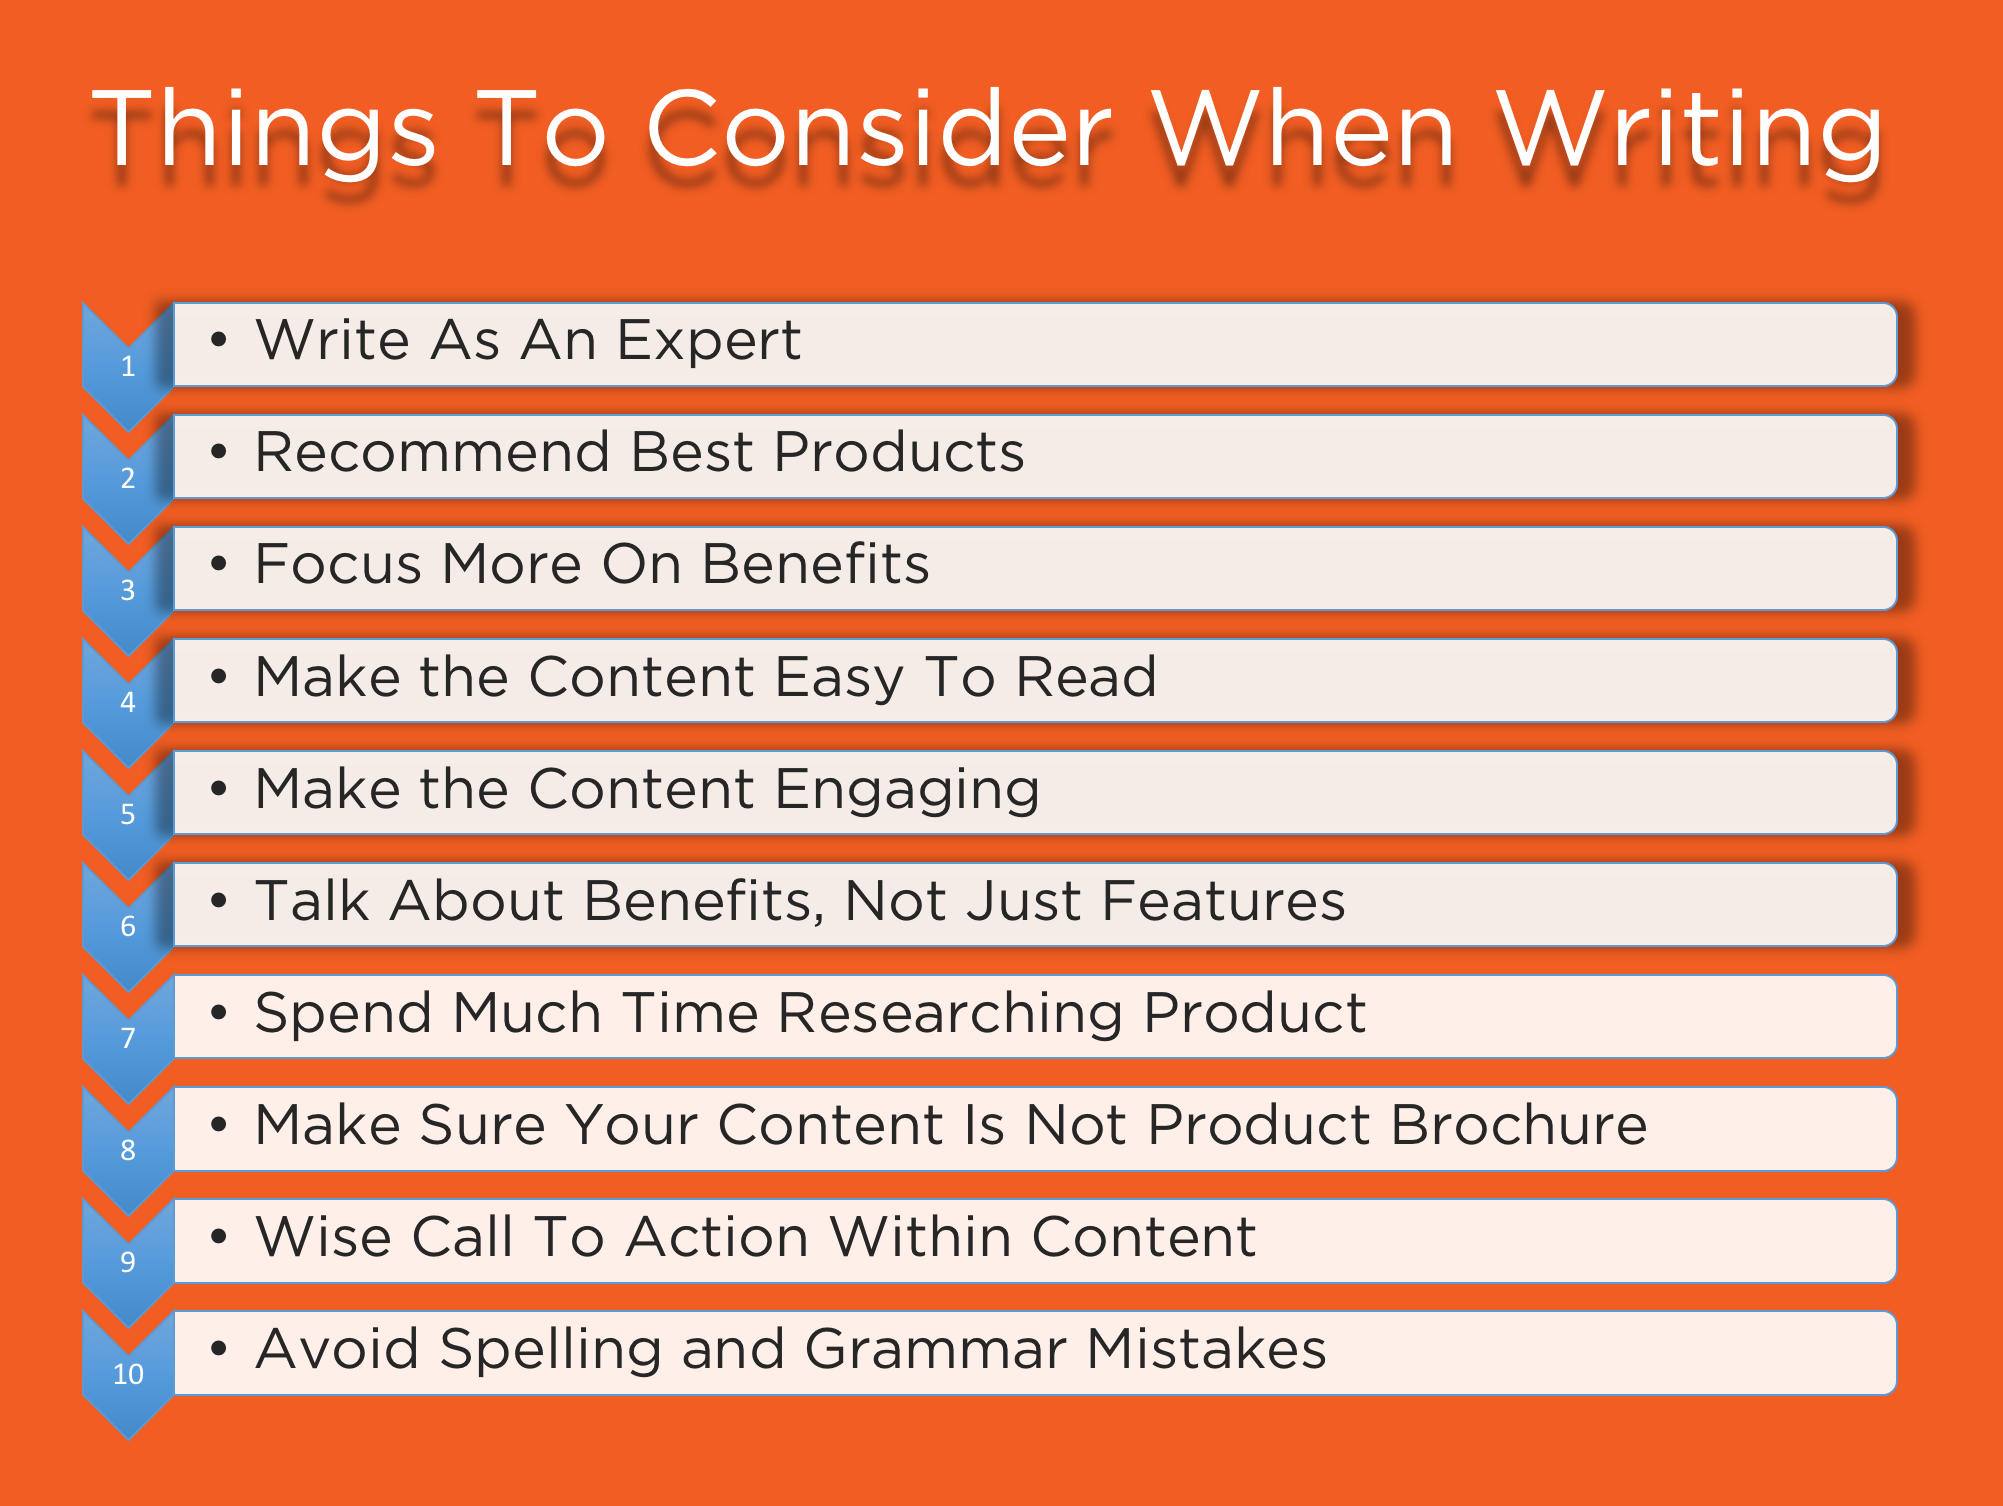 Things To Consider When Writing Contents